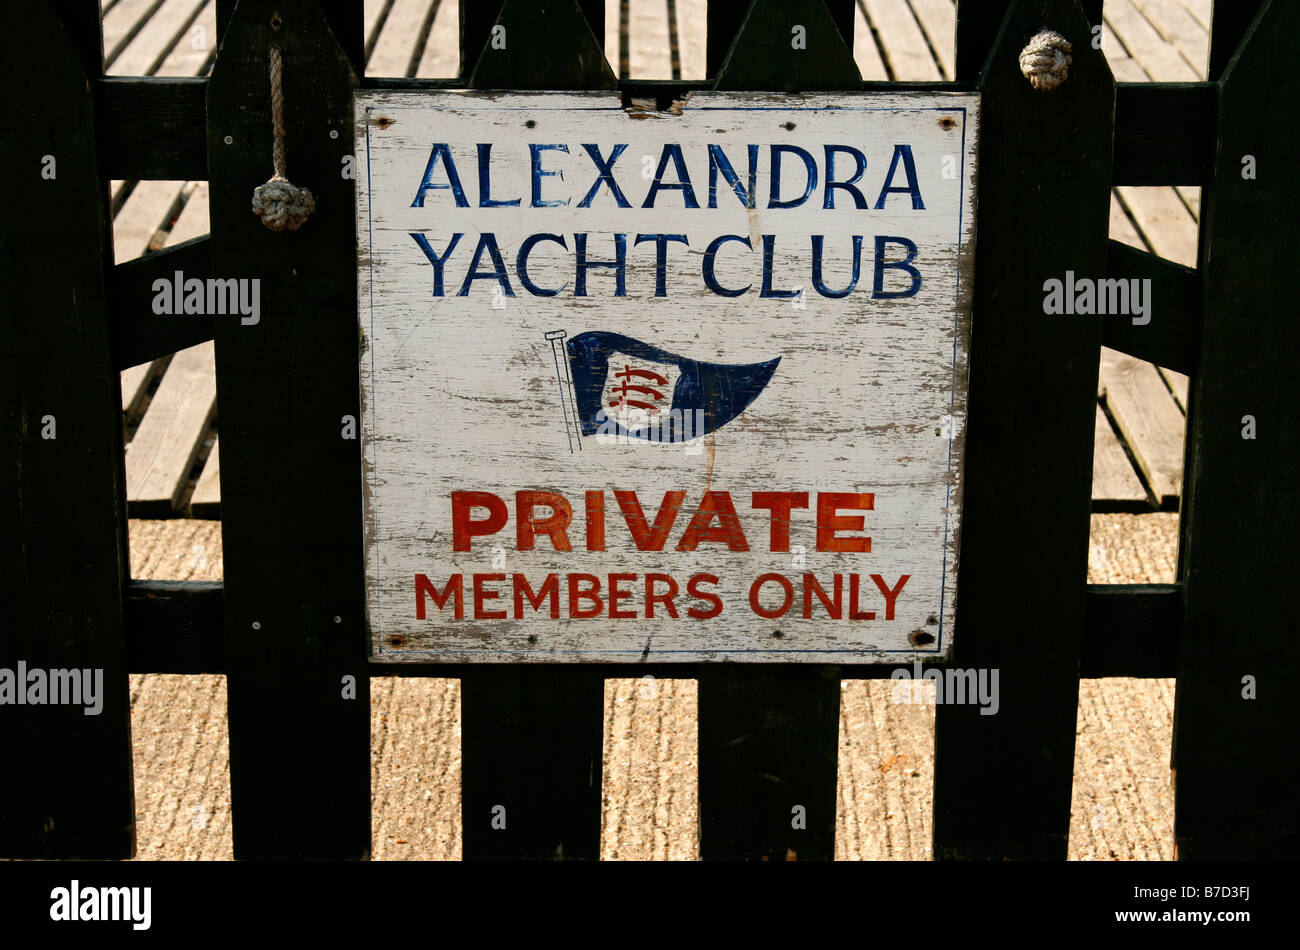 A sign in Southend, Essex, announcing 'Alexandra Yacht Club - Private, Members Only'. - Stock Image